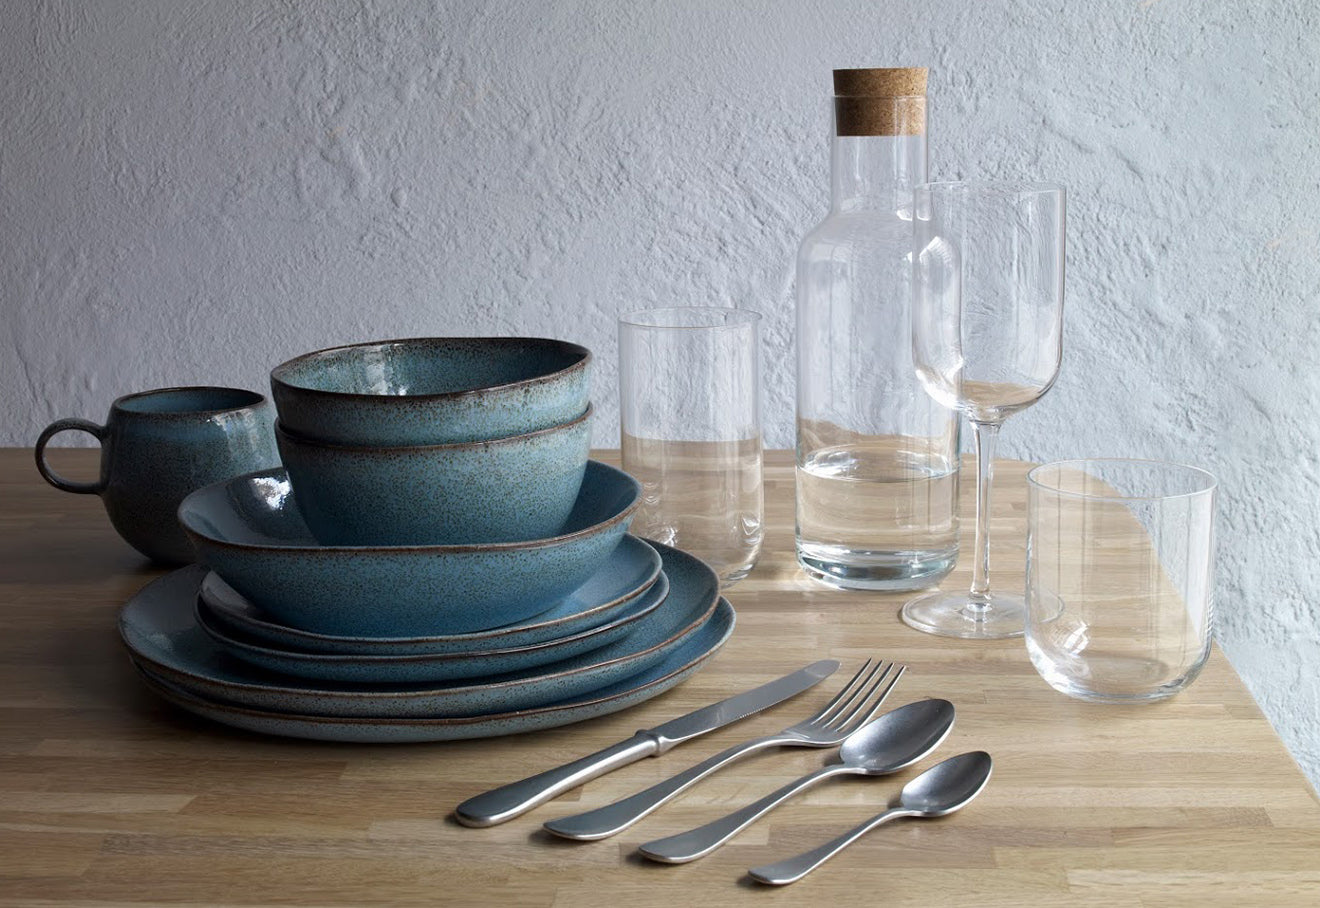 Habitat crockery and cutlery sets new season collection SS16